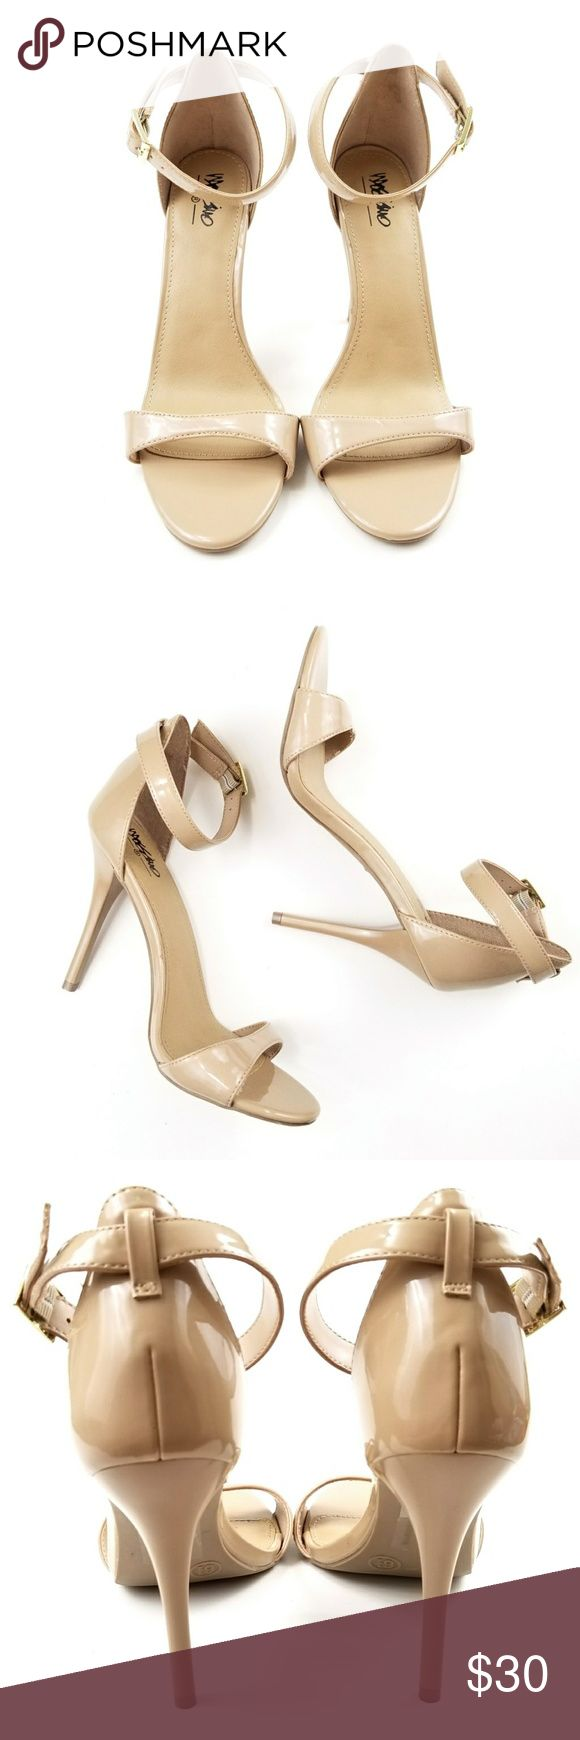 """FLASH SALE Mossimo Nude Strappy Heels Mossimo, nude/tan color, patent faux leather, strappy high heel, excellent condition, never worn, 4"""" heel, size 6.5. Shoes Heels"""